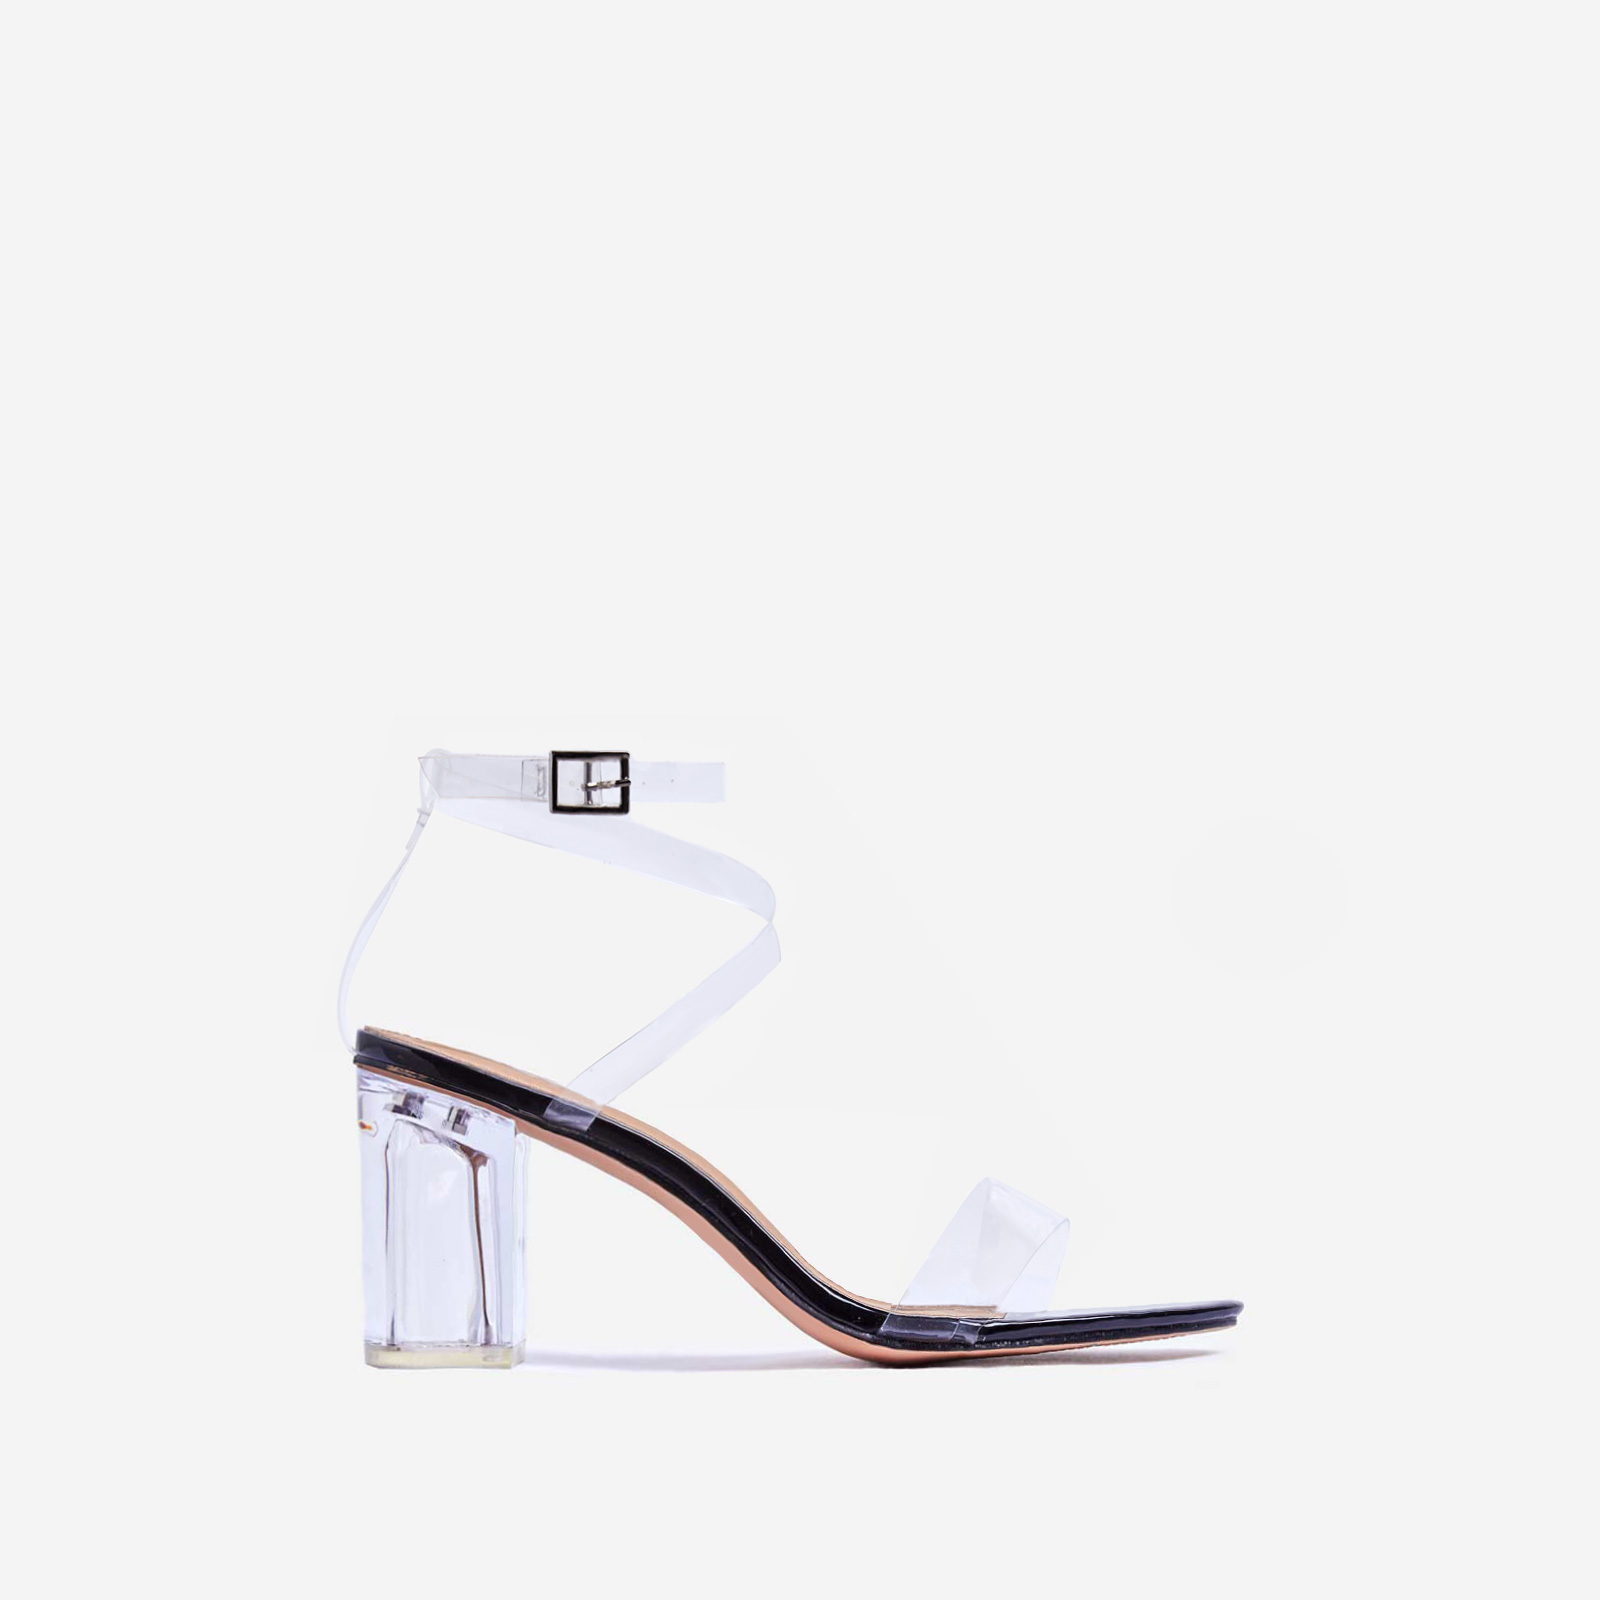 Date Barely There Clear Perspex Midi Block Heel In Black Patent